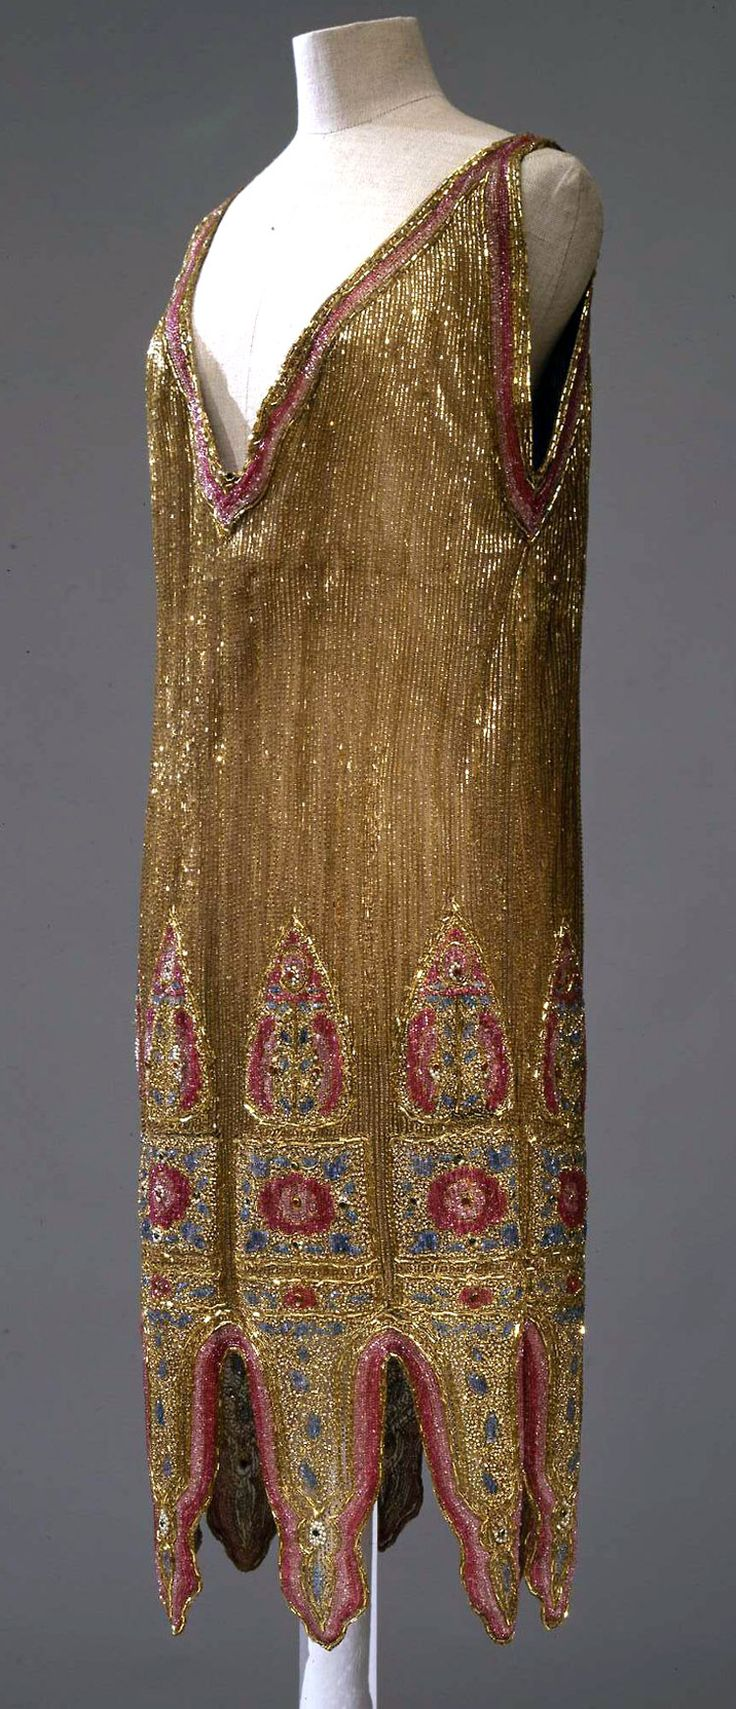 Evening dress, Italian manifacture, ca. 1925. Light brown slik tulle with deep V neckline, completely embroidered in gold coloured glass straws, strass in different colours and gold thread. Photo: Marcello Bertoni. Collection Galleria del Costume di Palazzo Pitti via Europeana Fashions